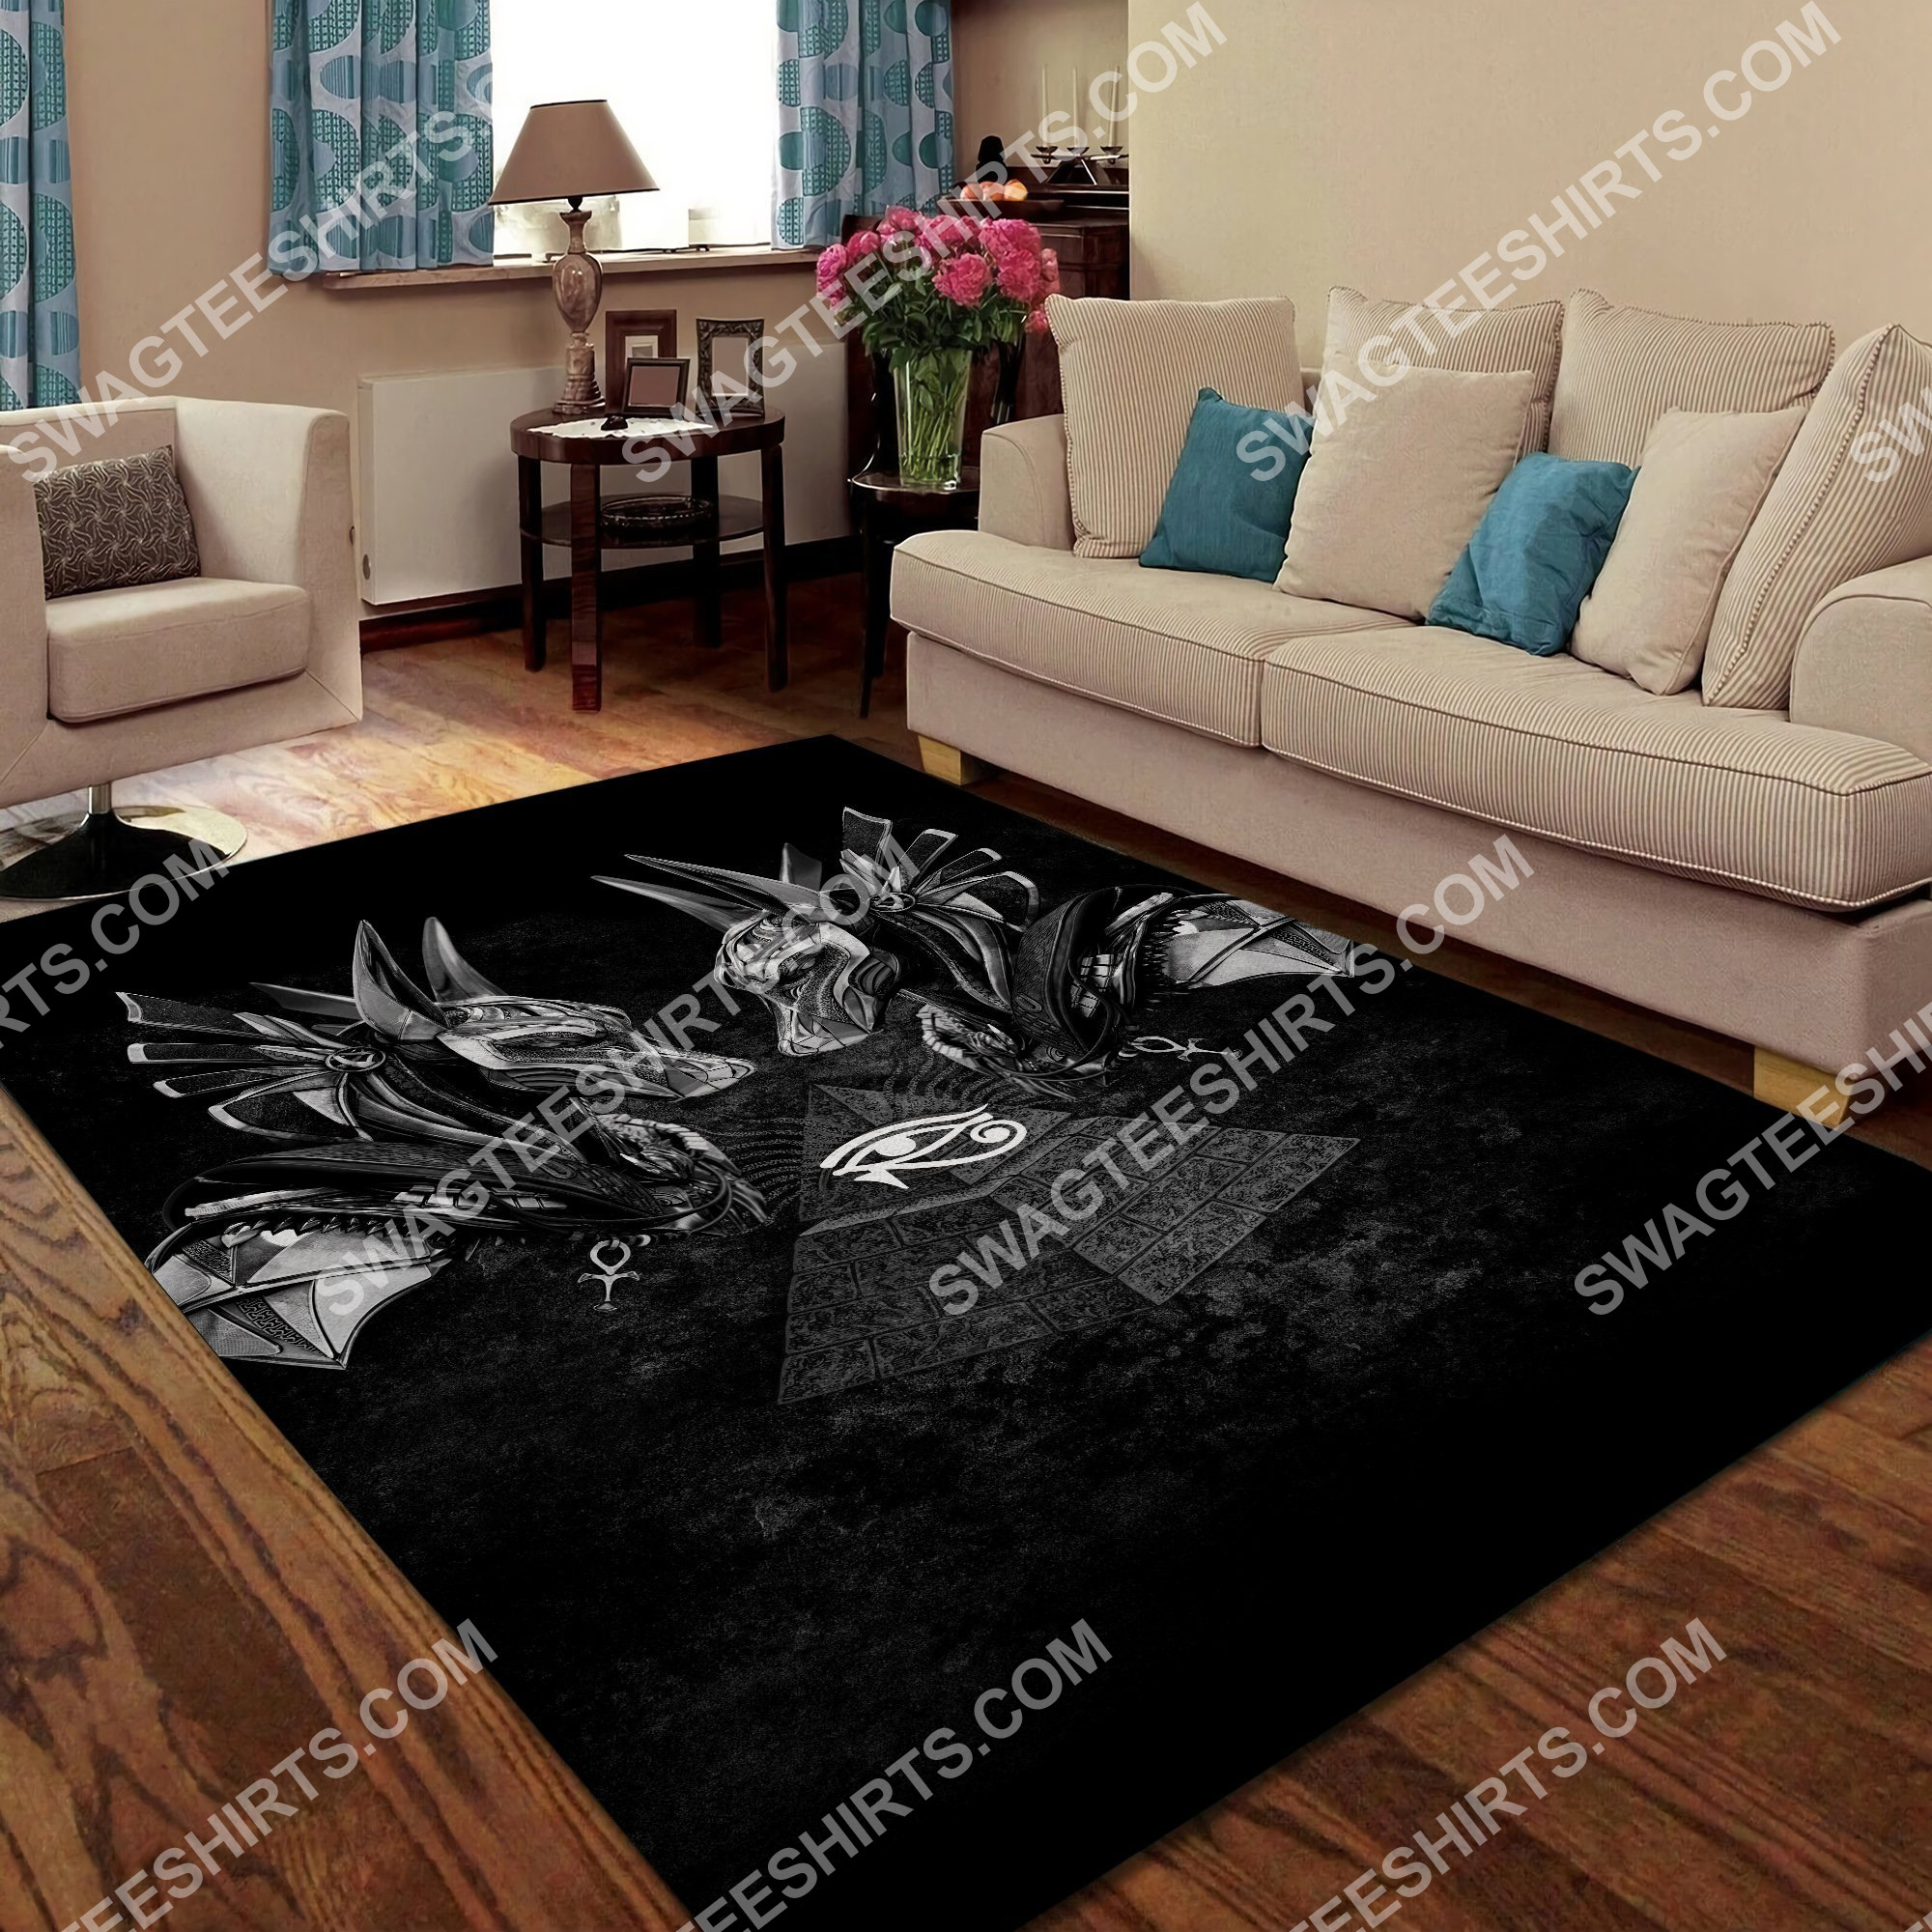 anubis god of the dead all over printed rug 4(1)